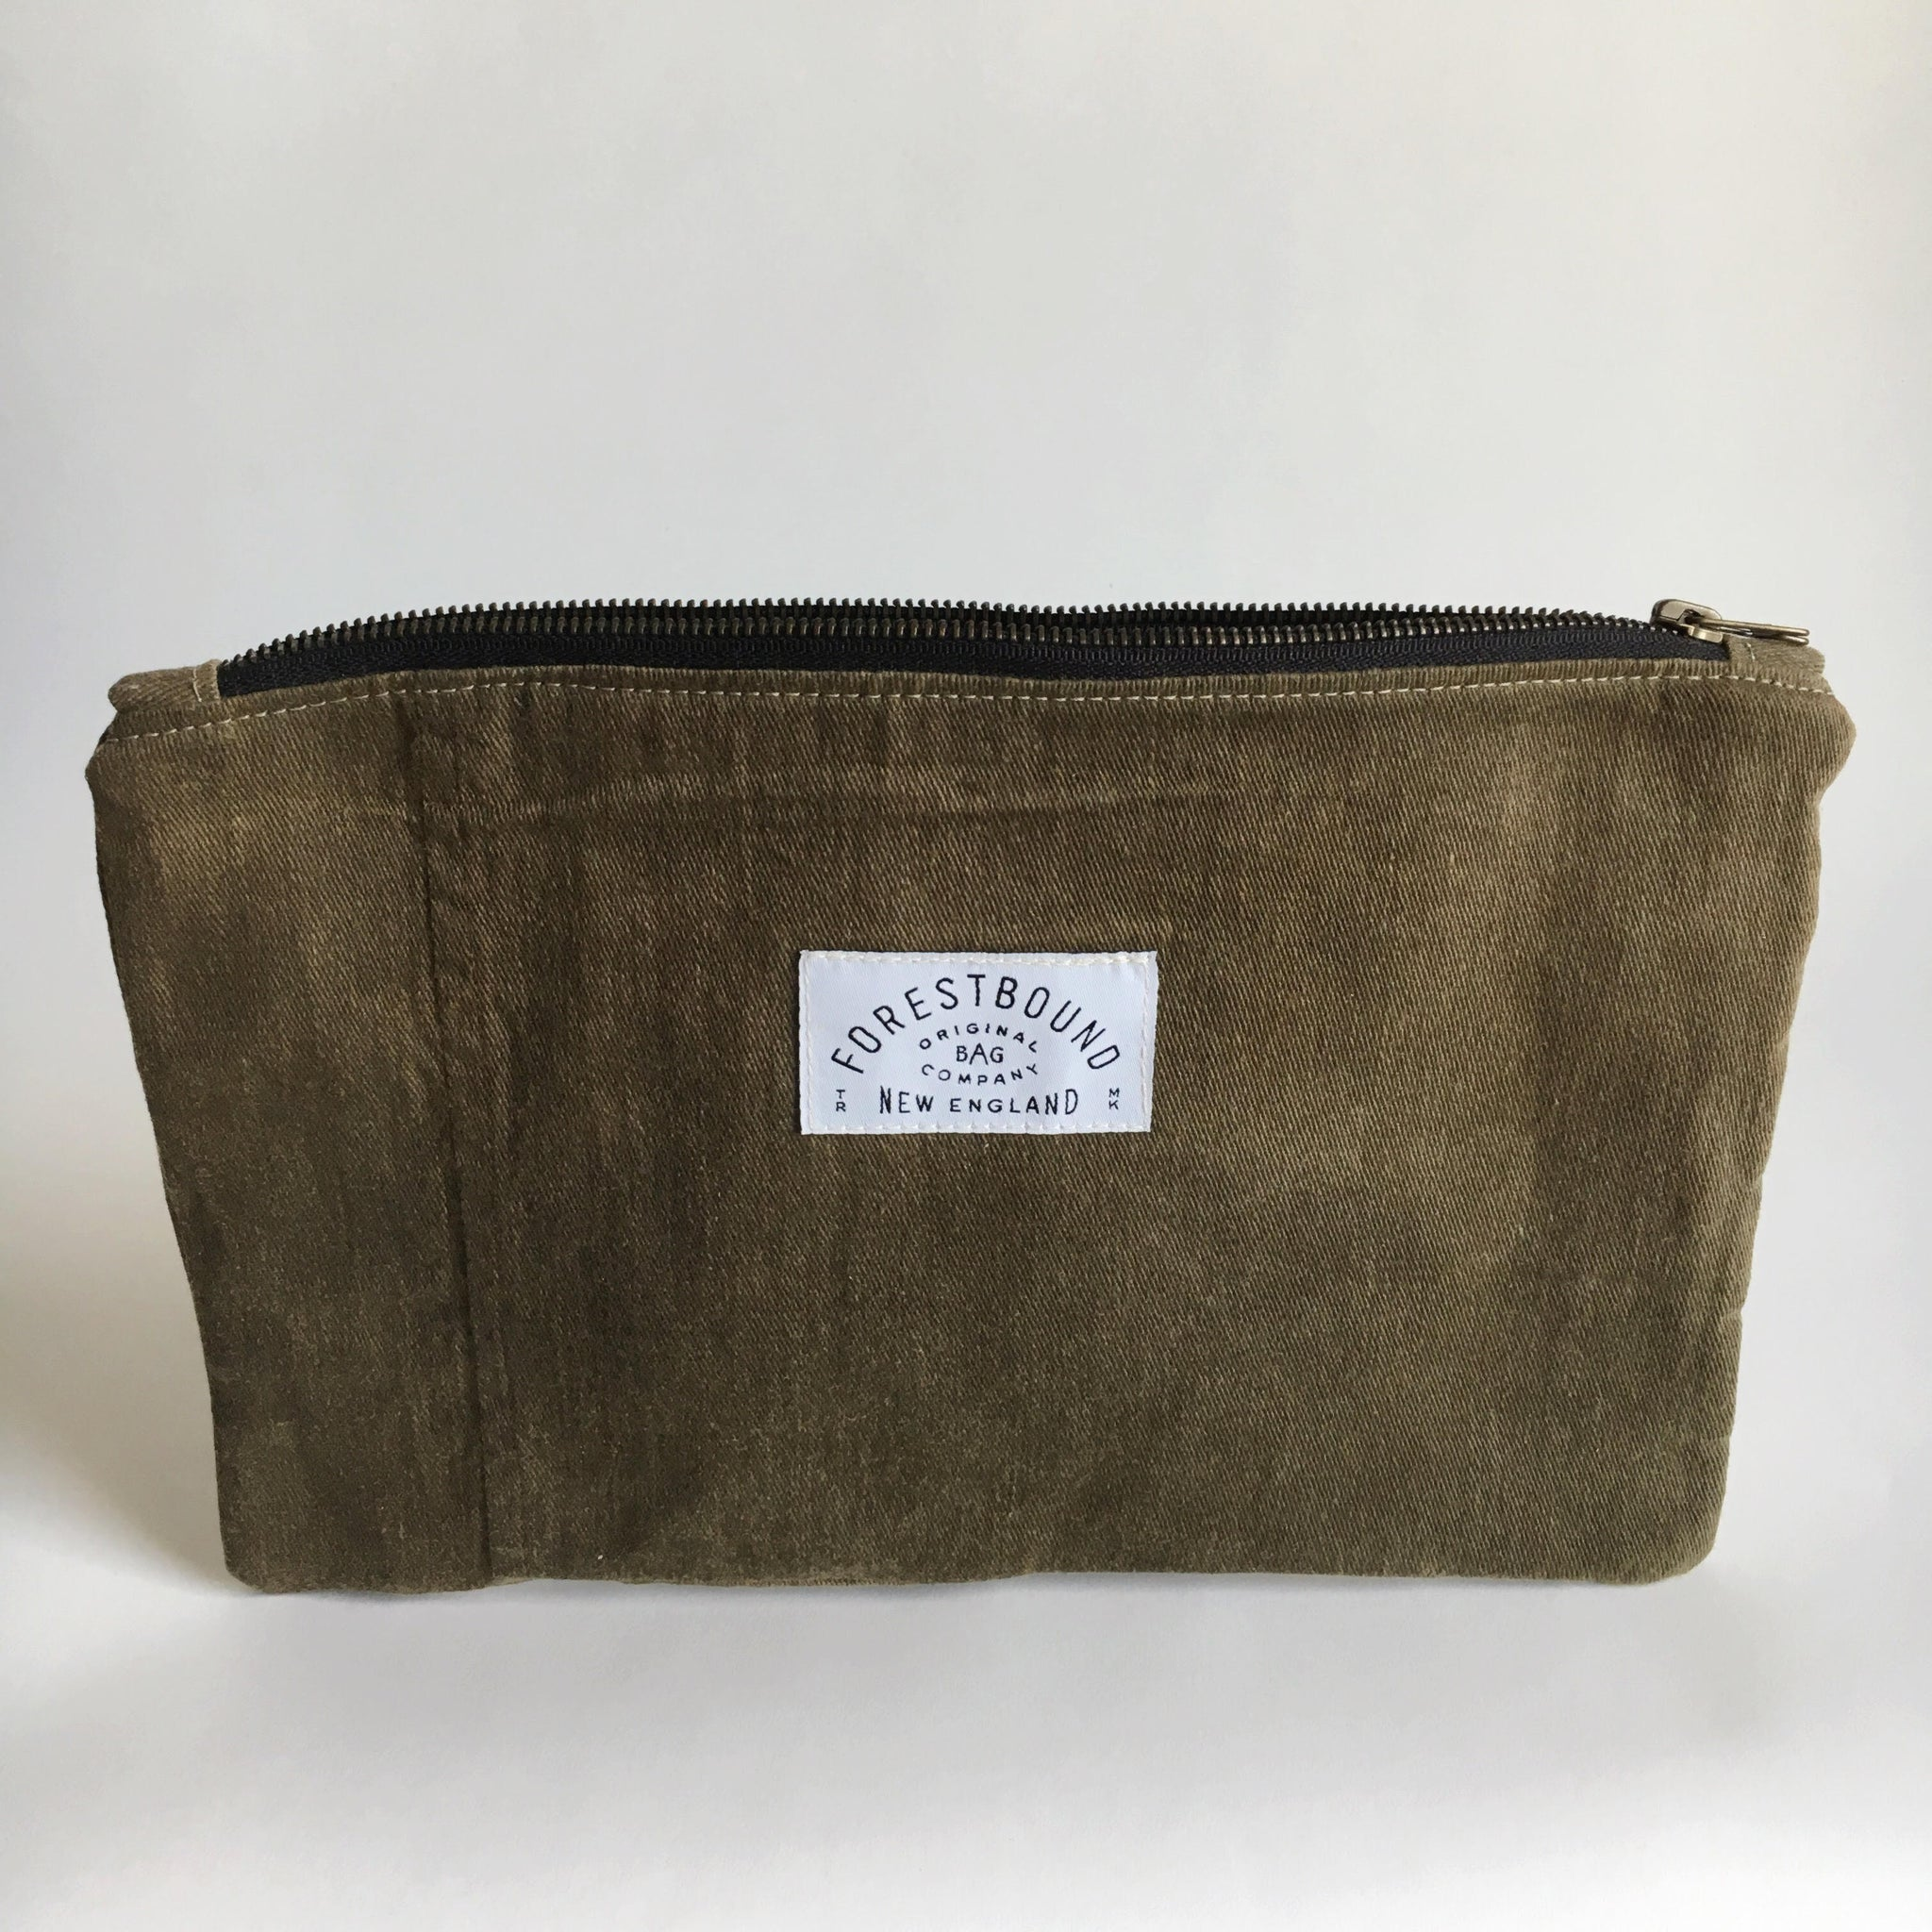 WW1 era Canvas Utility Pouch